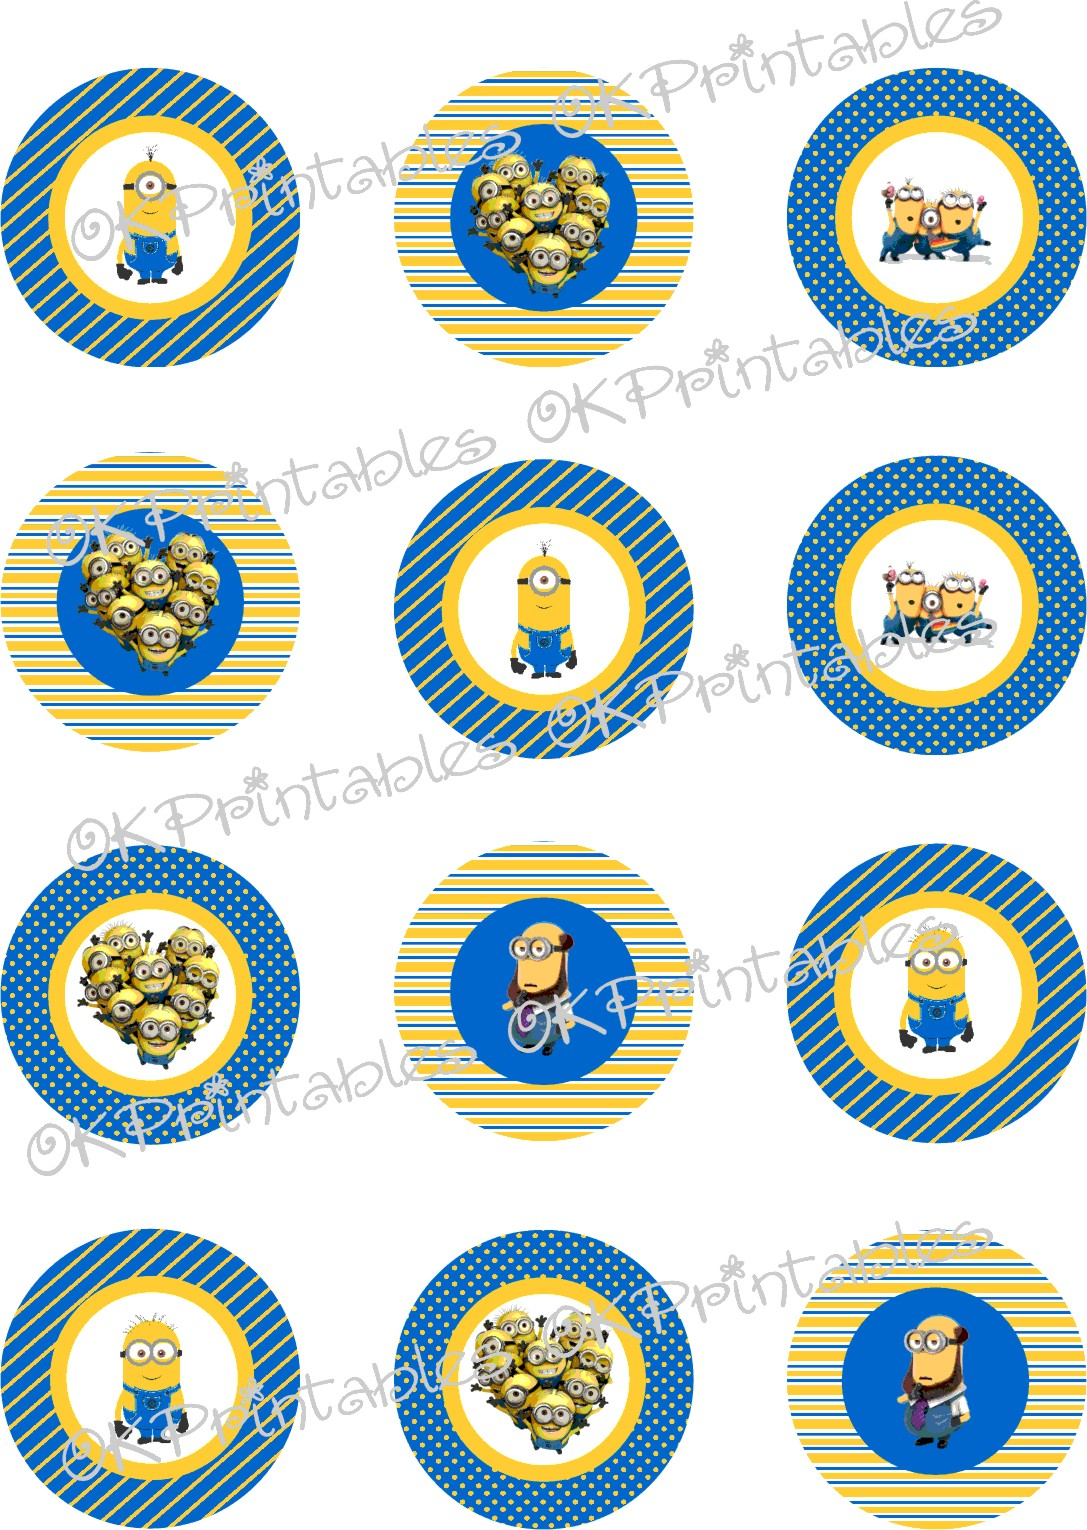 image regarding Minion Symbol Printable named Minions (Despicable Me) Cupcake Toppers, Printable, Minion Circles, Again In the direction of Higher education Labels Far too Accessible